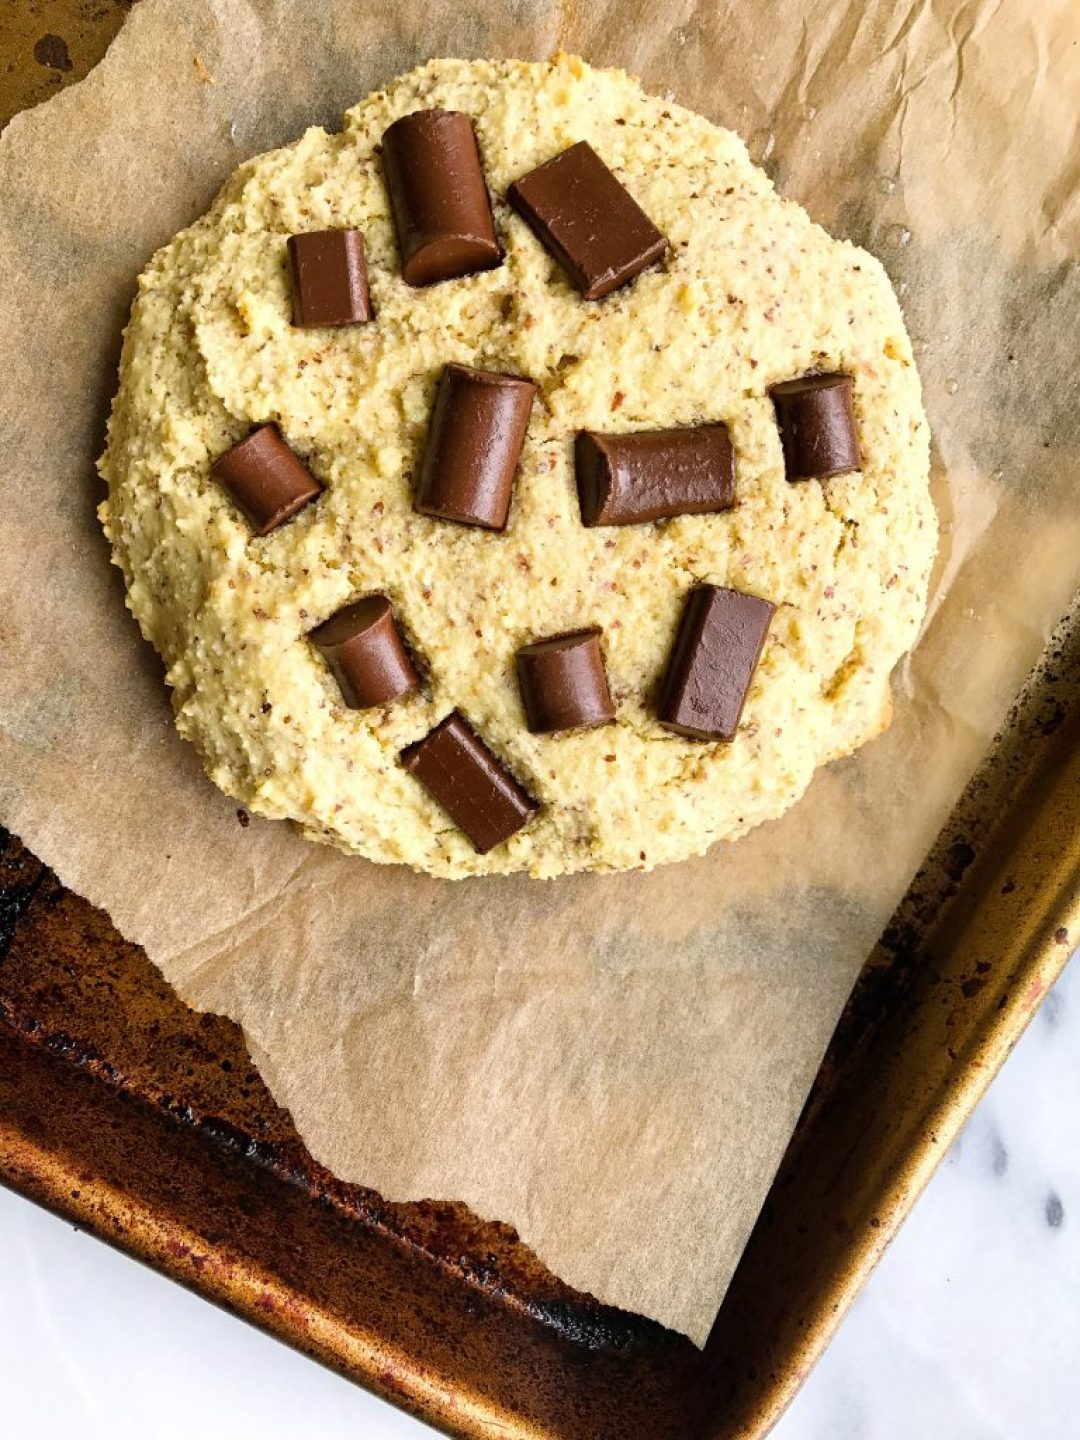 One Giant Paleo Chocolate Chip Protein Cookie that is paleo, grain and dairy-free!